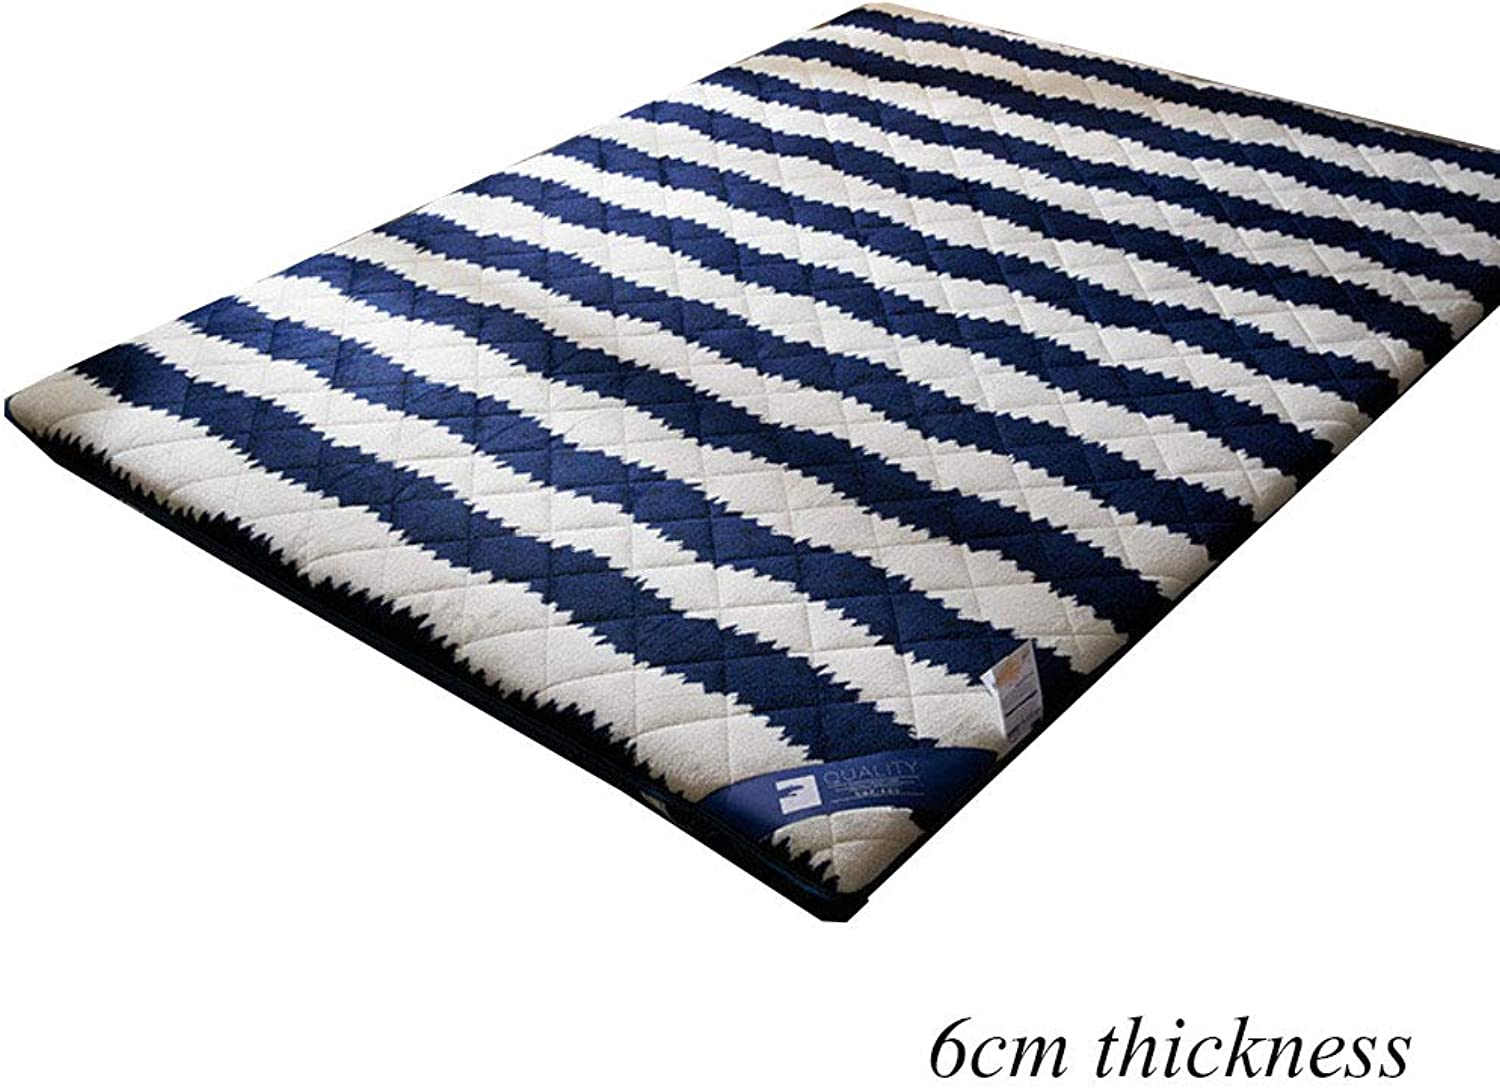 Flannel Tatami Floor Mat, Traditional Japanese Futon Bed Mattress Mat Topper Soft Sleeping Pad for Dorm Bedroom Home-b 100x200cm(39x79inch)